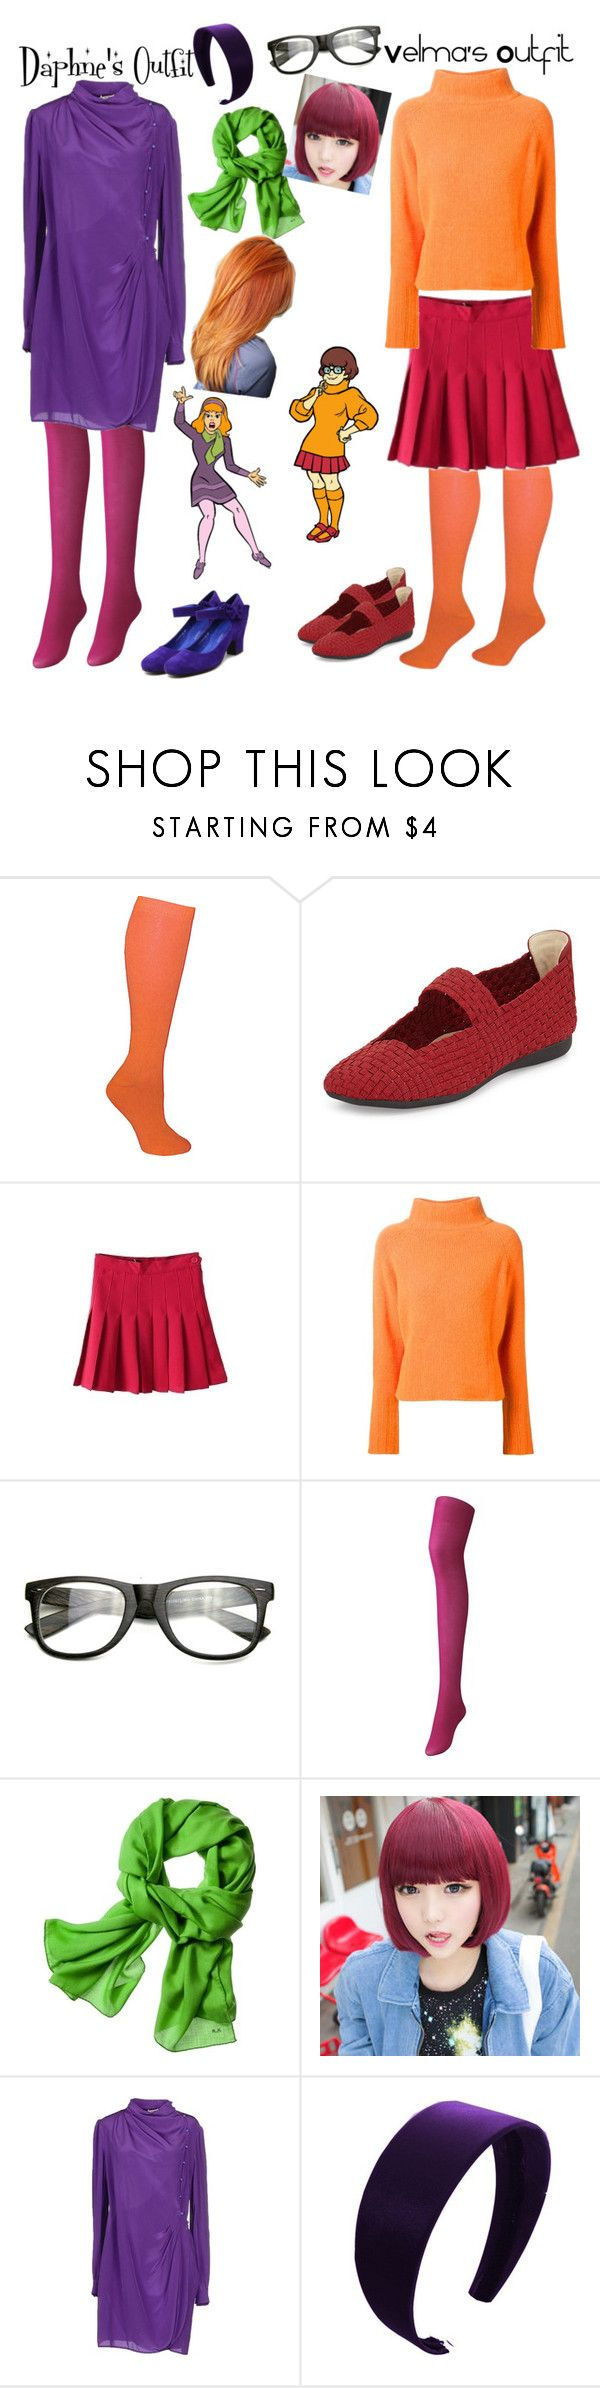 """Daphne's and Velma's Outfits"" by booknerd03 ❤ liked on Polyvore featuring Ozone, Taryn Rose, The Elder Statesman, INDIE HAIR, Uniqlo, Reed Krakoff, GABALMANIA, Miu Miu and Django & Juliette"